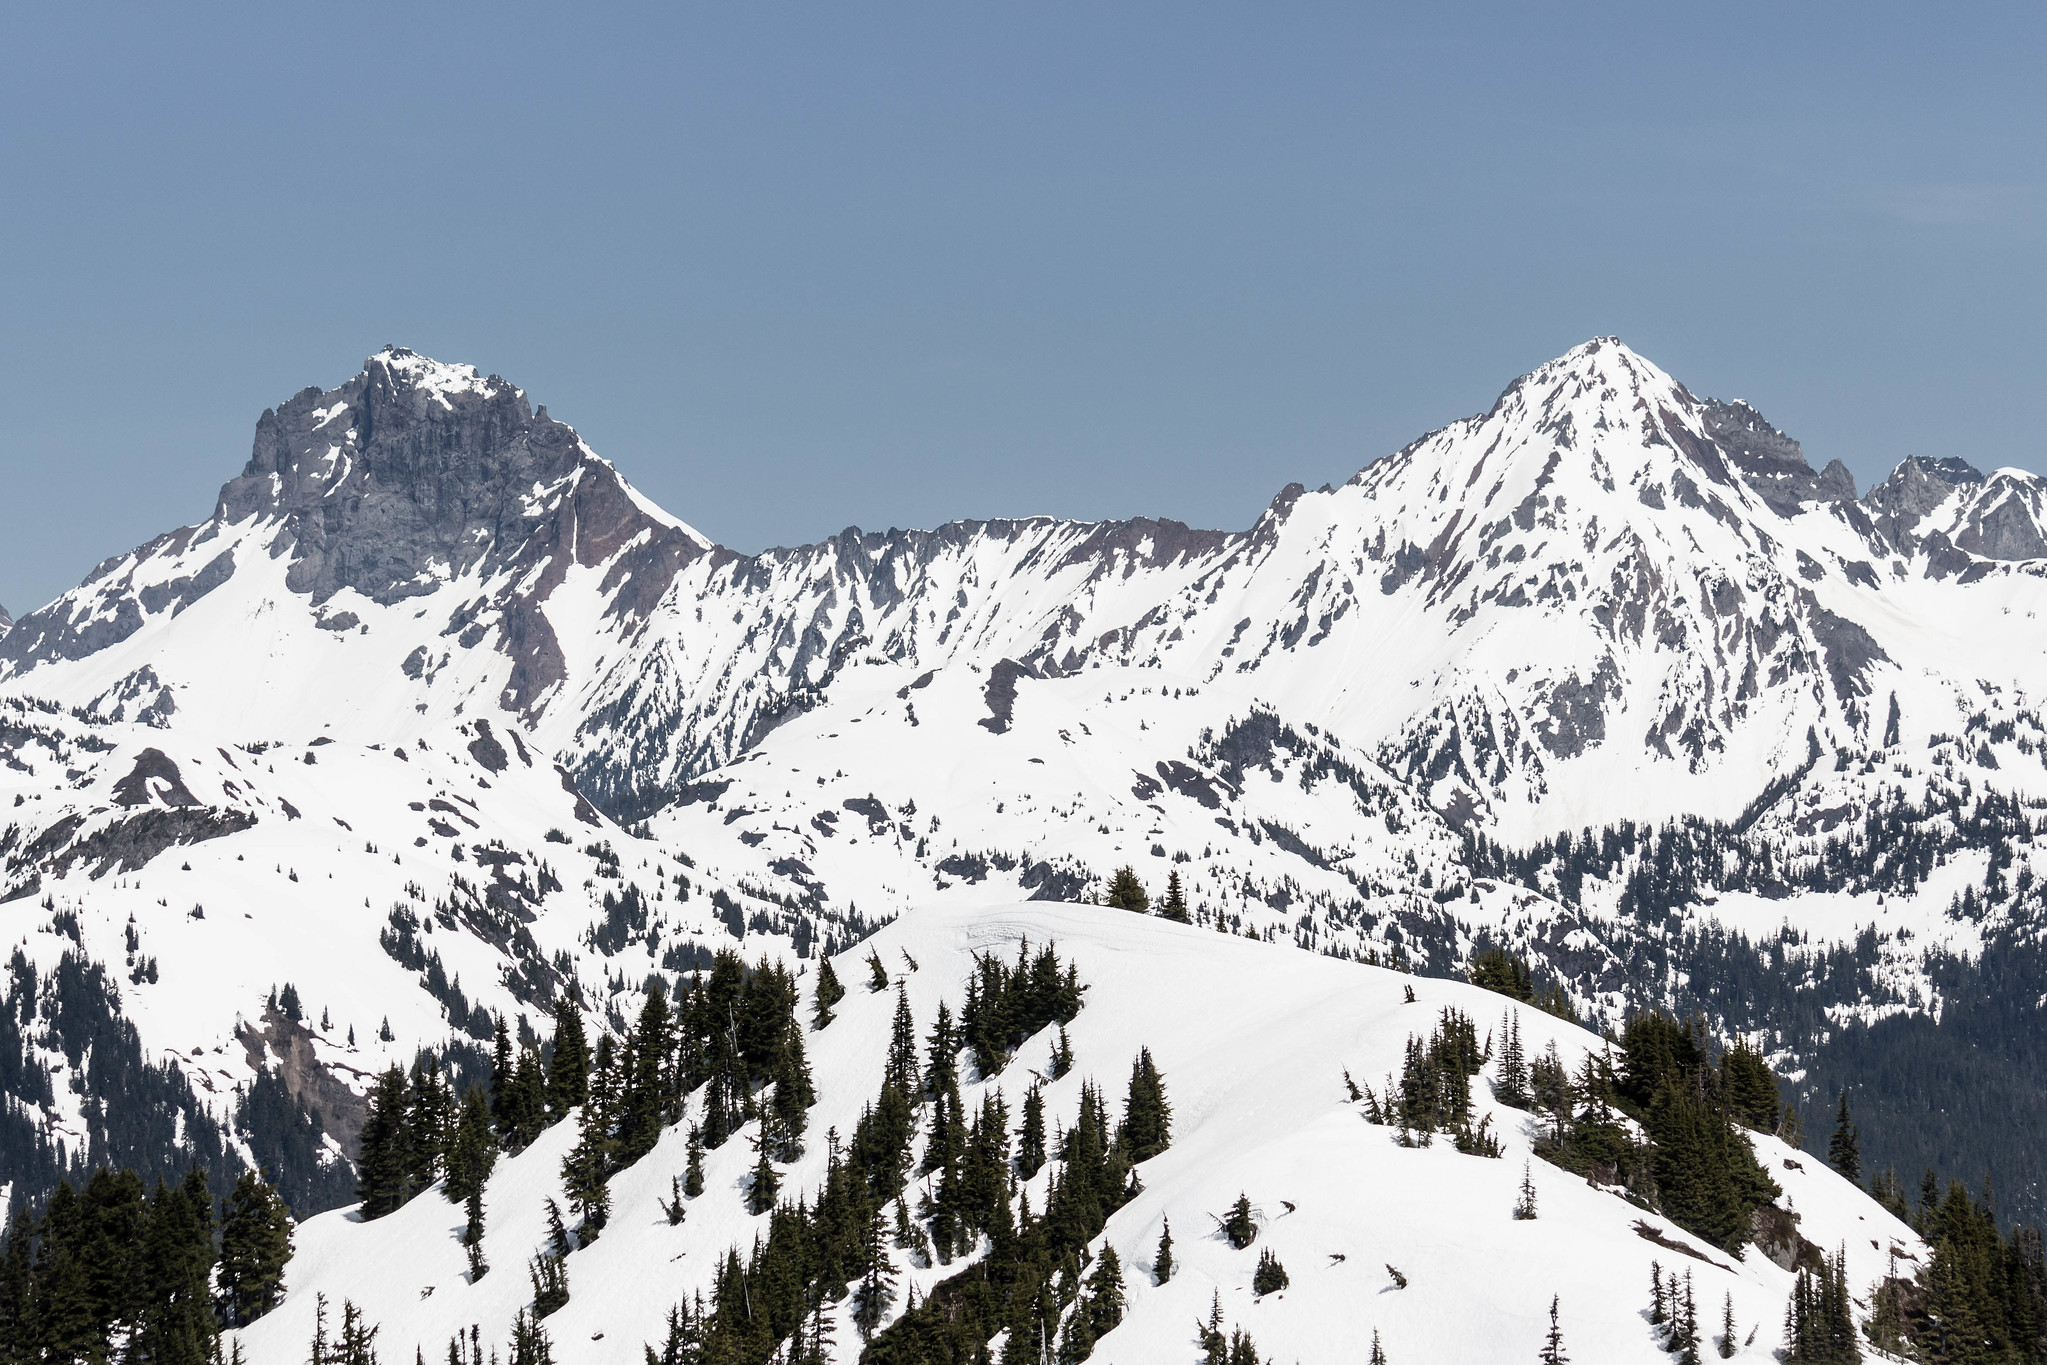 American Border Peak and Mount Larrabee